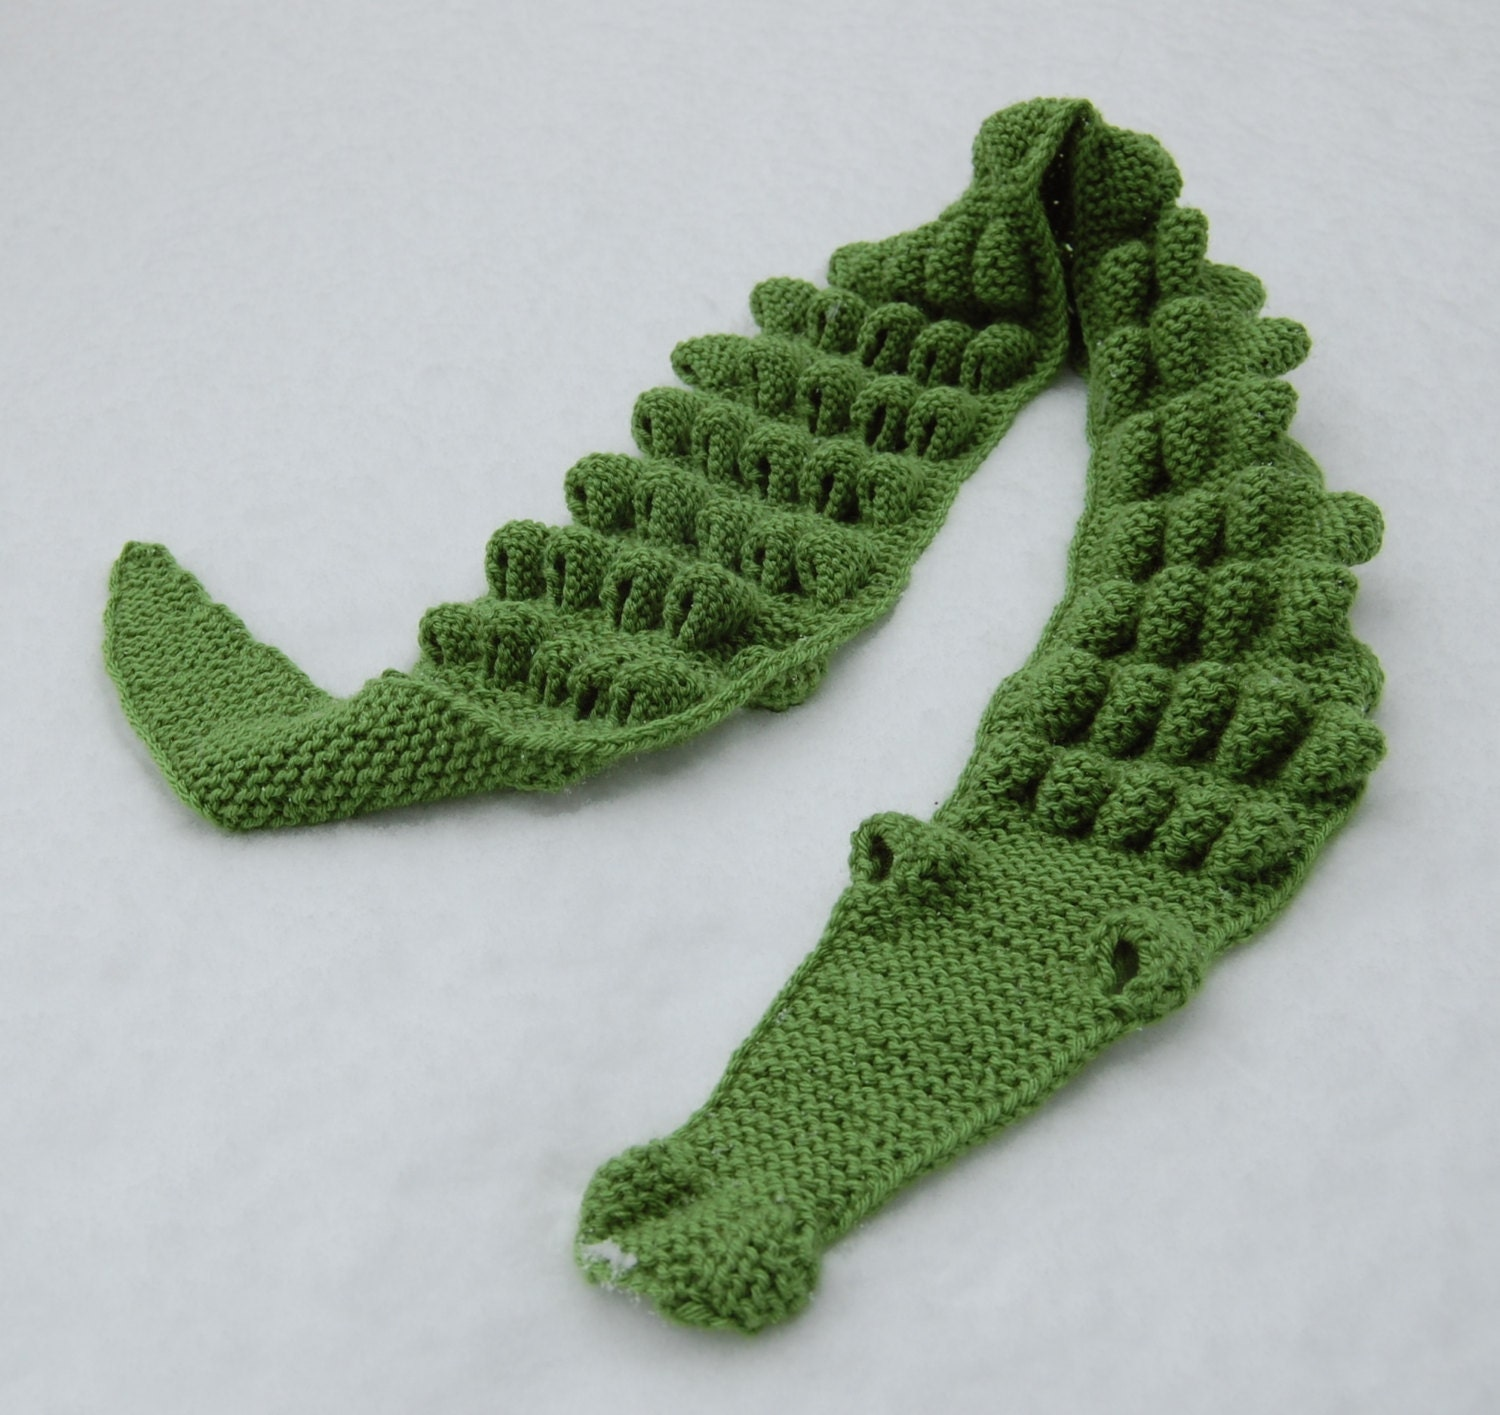 Knitting Pattern Alligator Scarf : Hand Knitted Crocodile Scarf